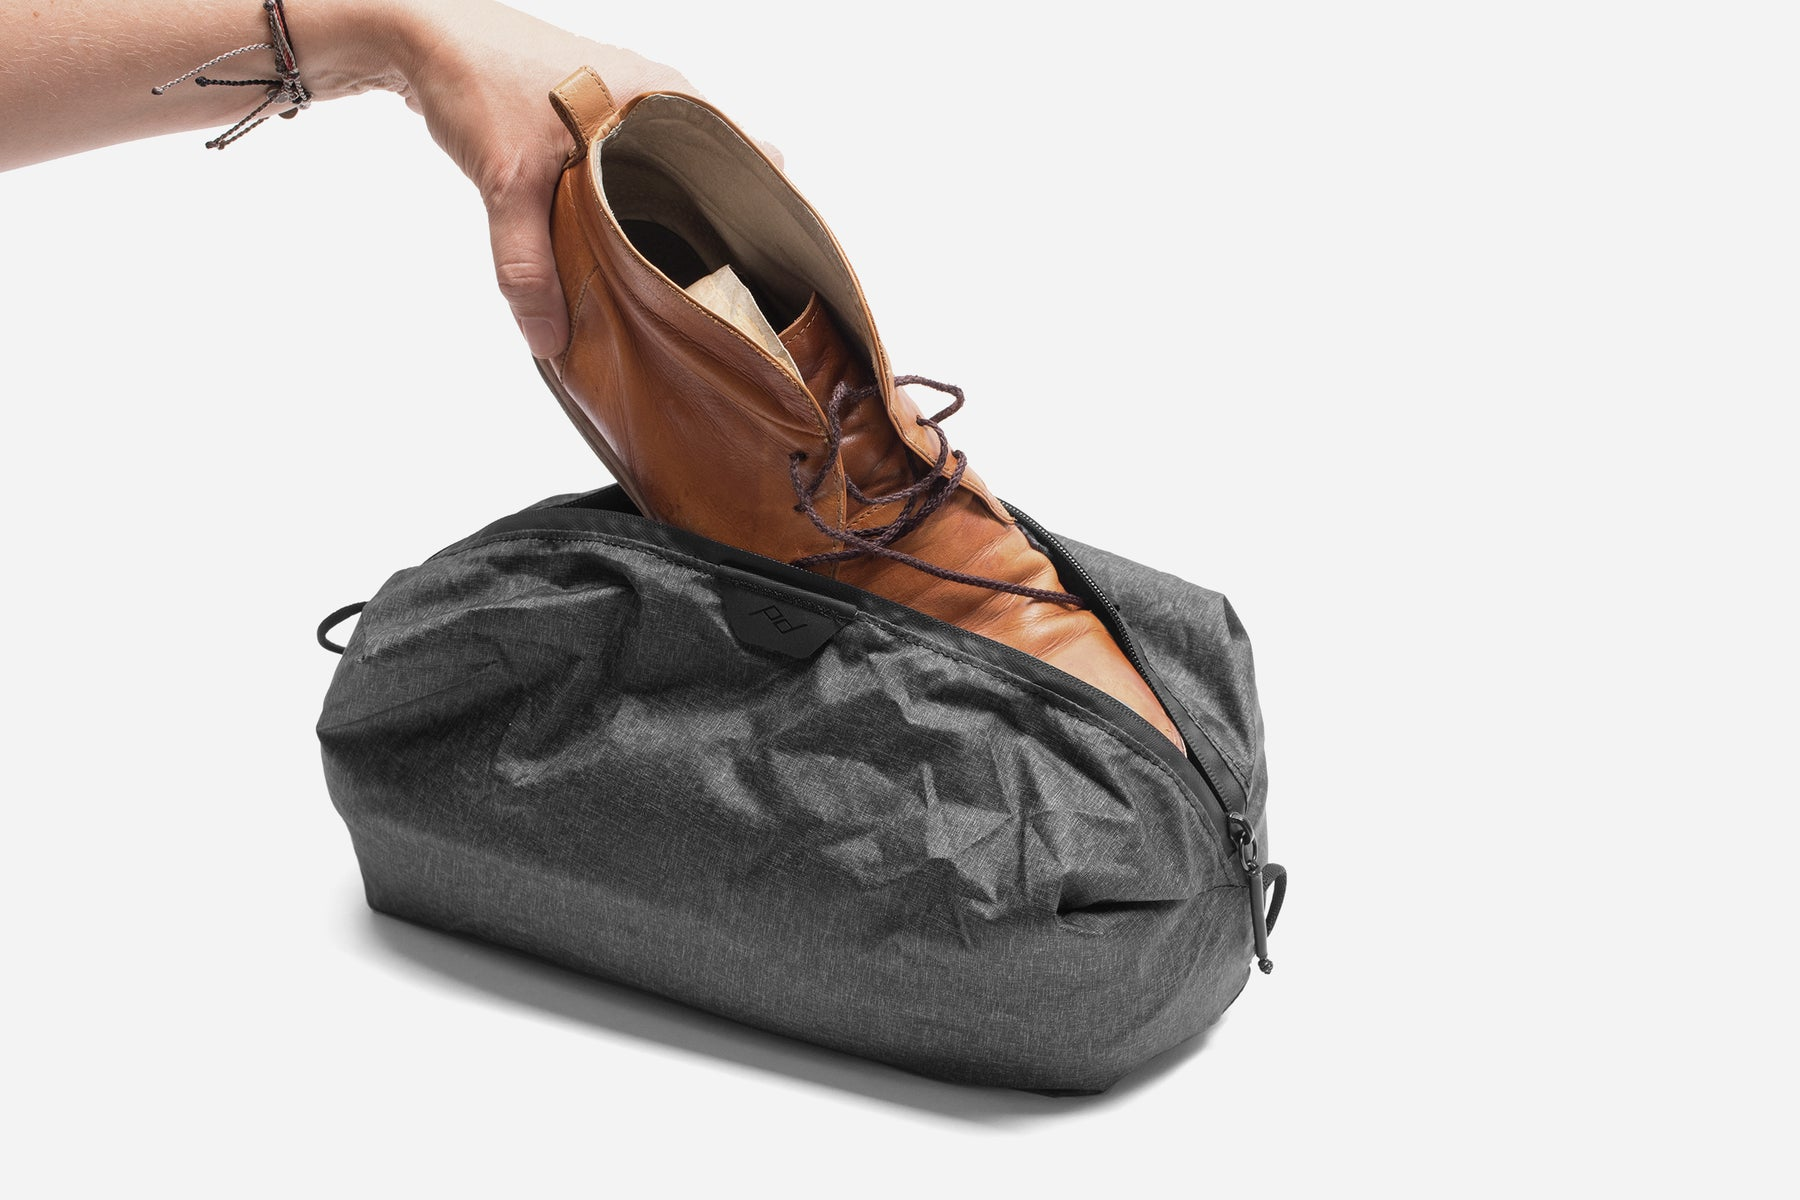 The Peak Design Shoe Pouch, Ultralight and Ultra-Packable for Travel